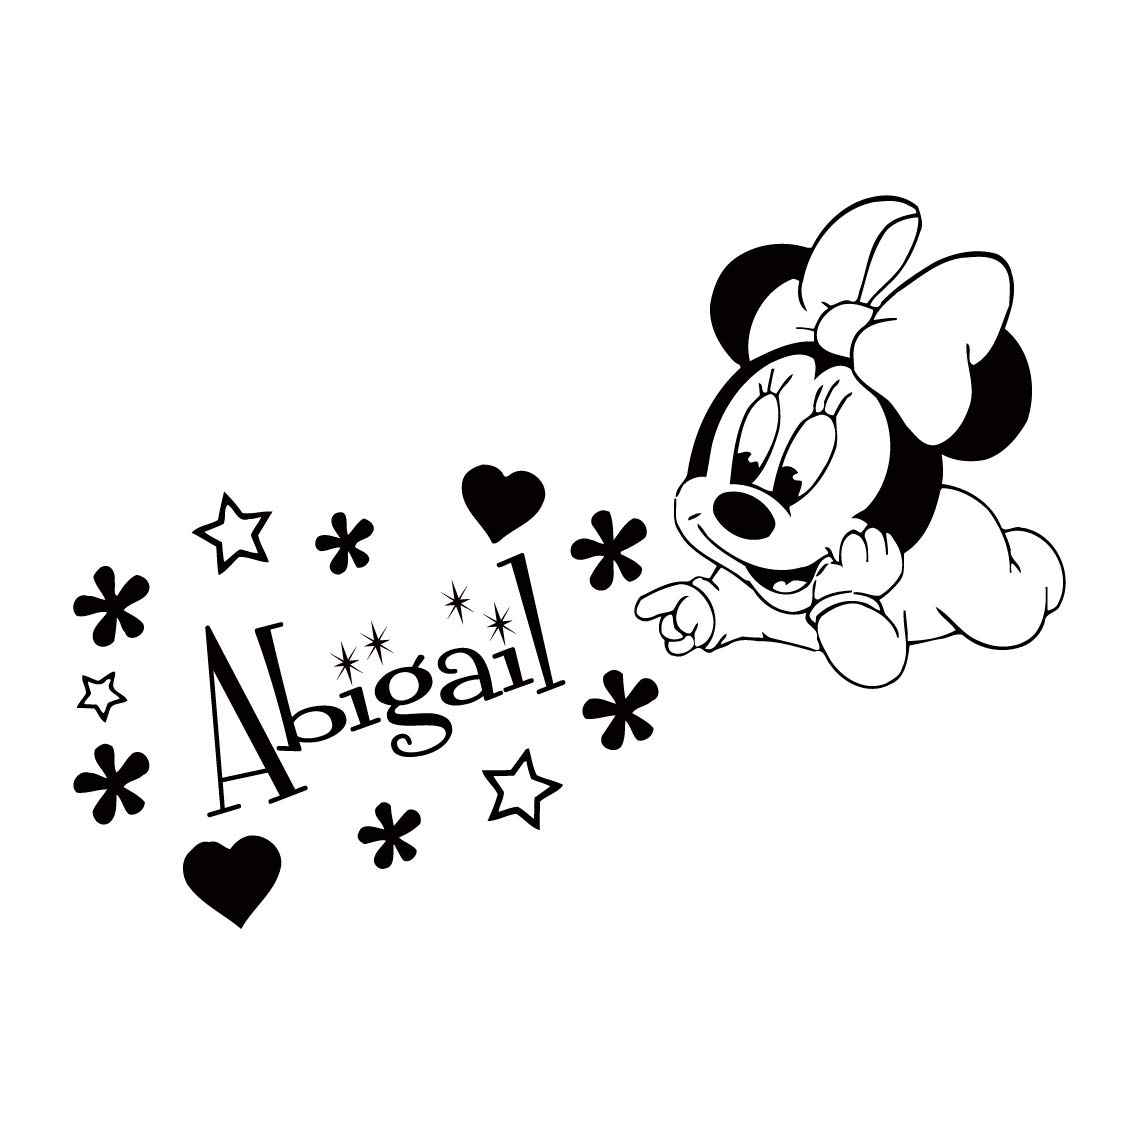 Amazon.com: Name Wall Decal Minnie Mouse Disney Vinyl Decals.